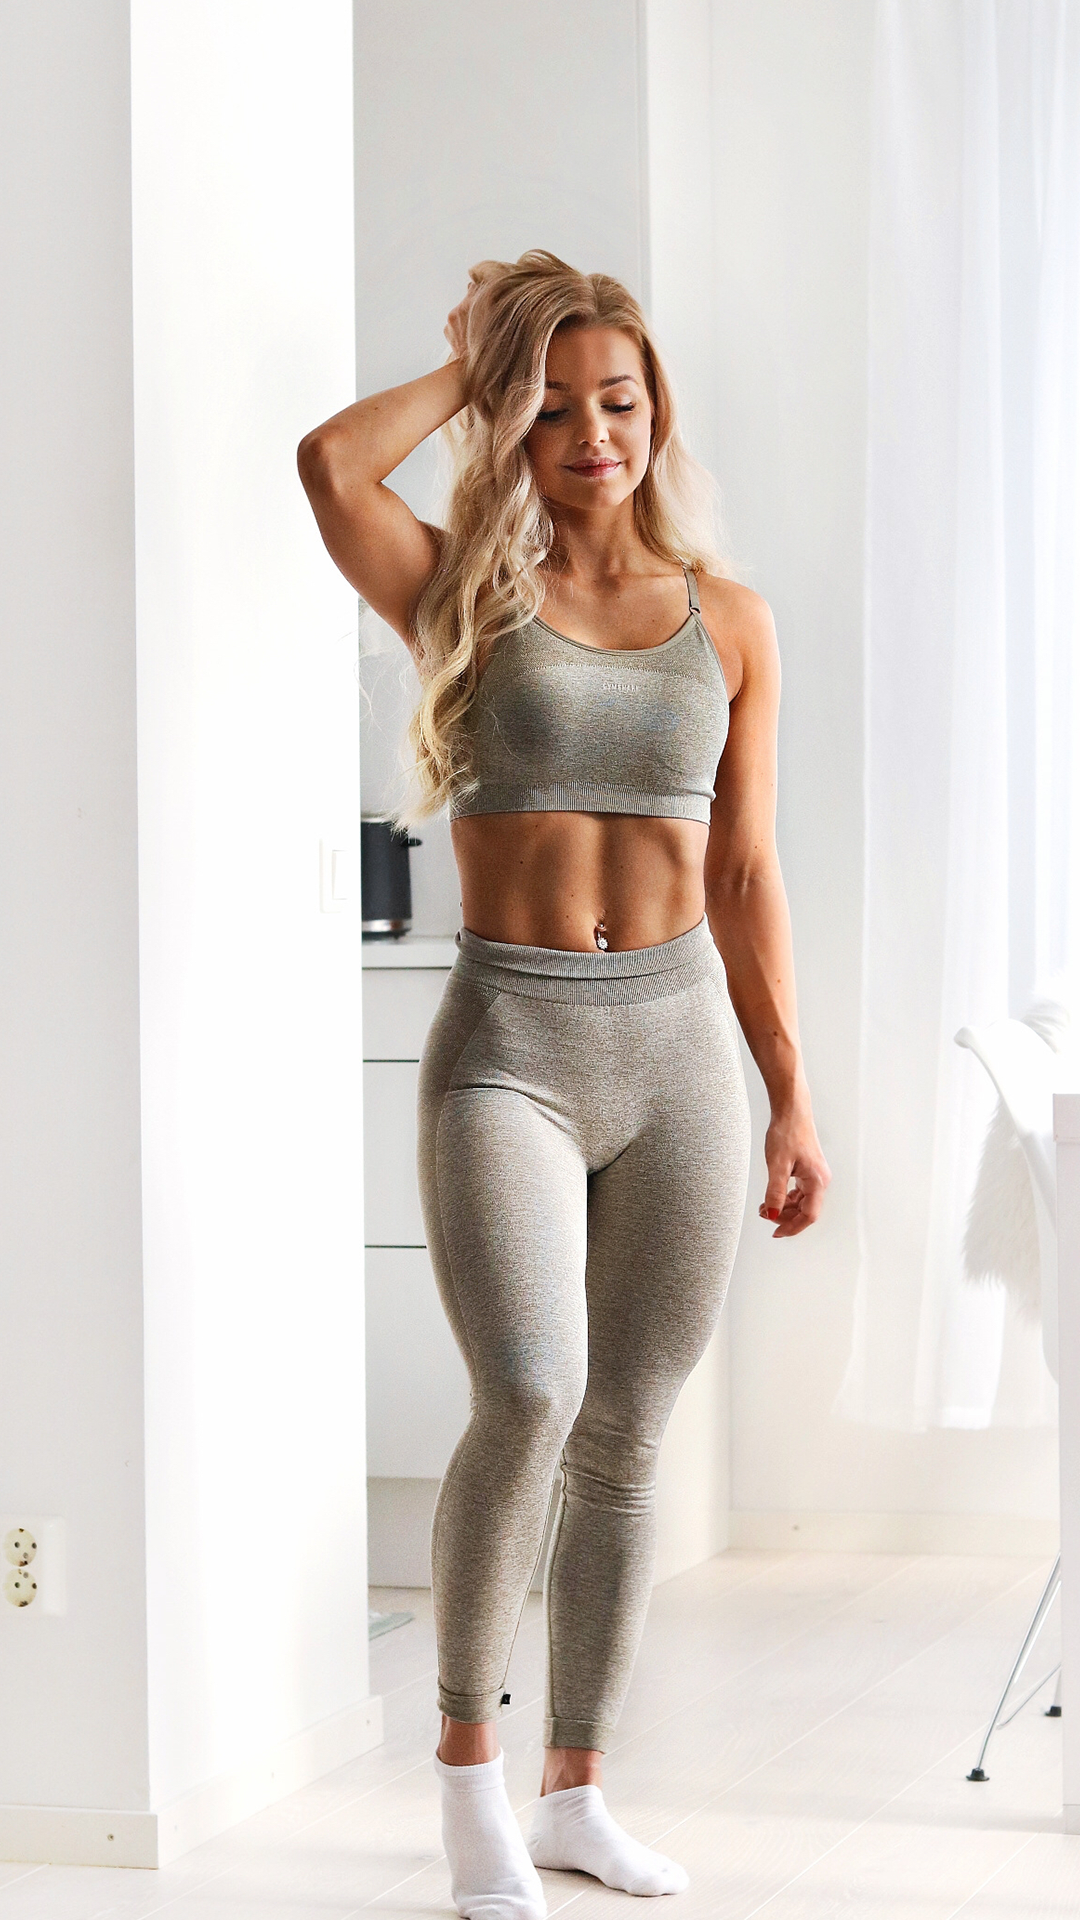 aa3bcaa32e71cd Denice Moberg beautifully styles the High Waisted Flex in Khaki. Which  colour is your favourite? The High Waisted Flex Leggings combine the  signature ...